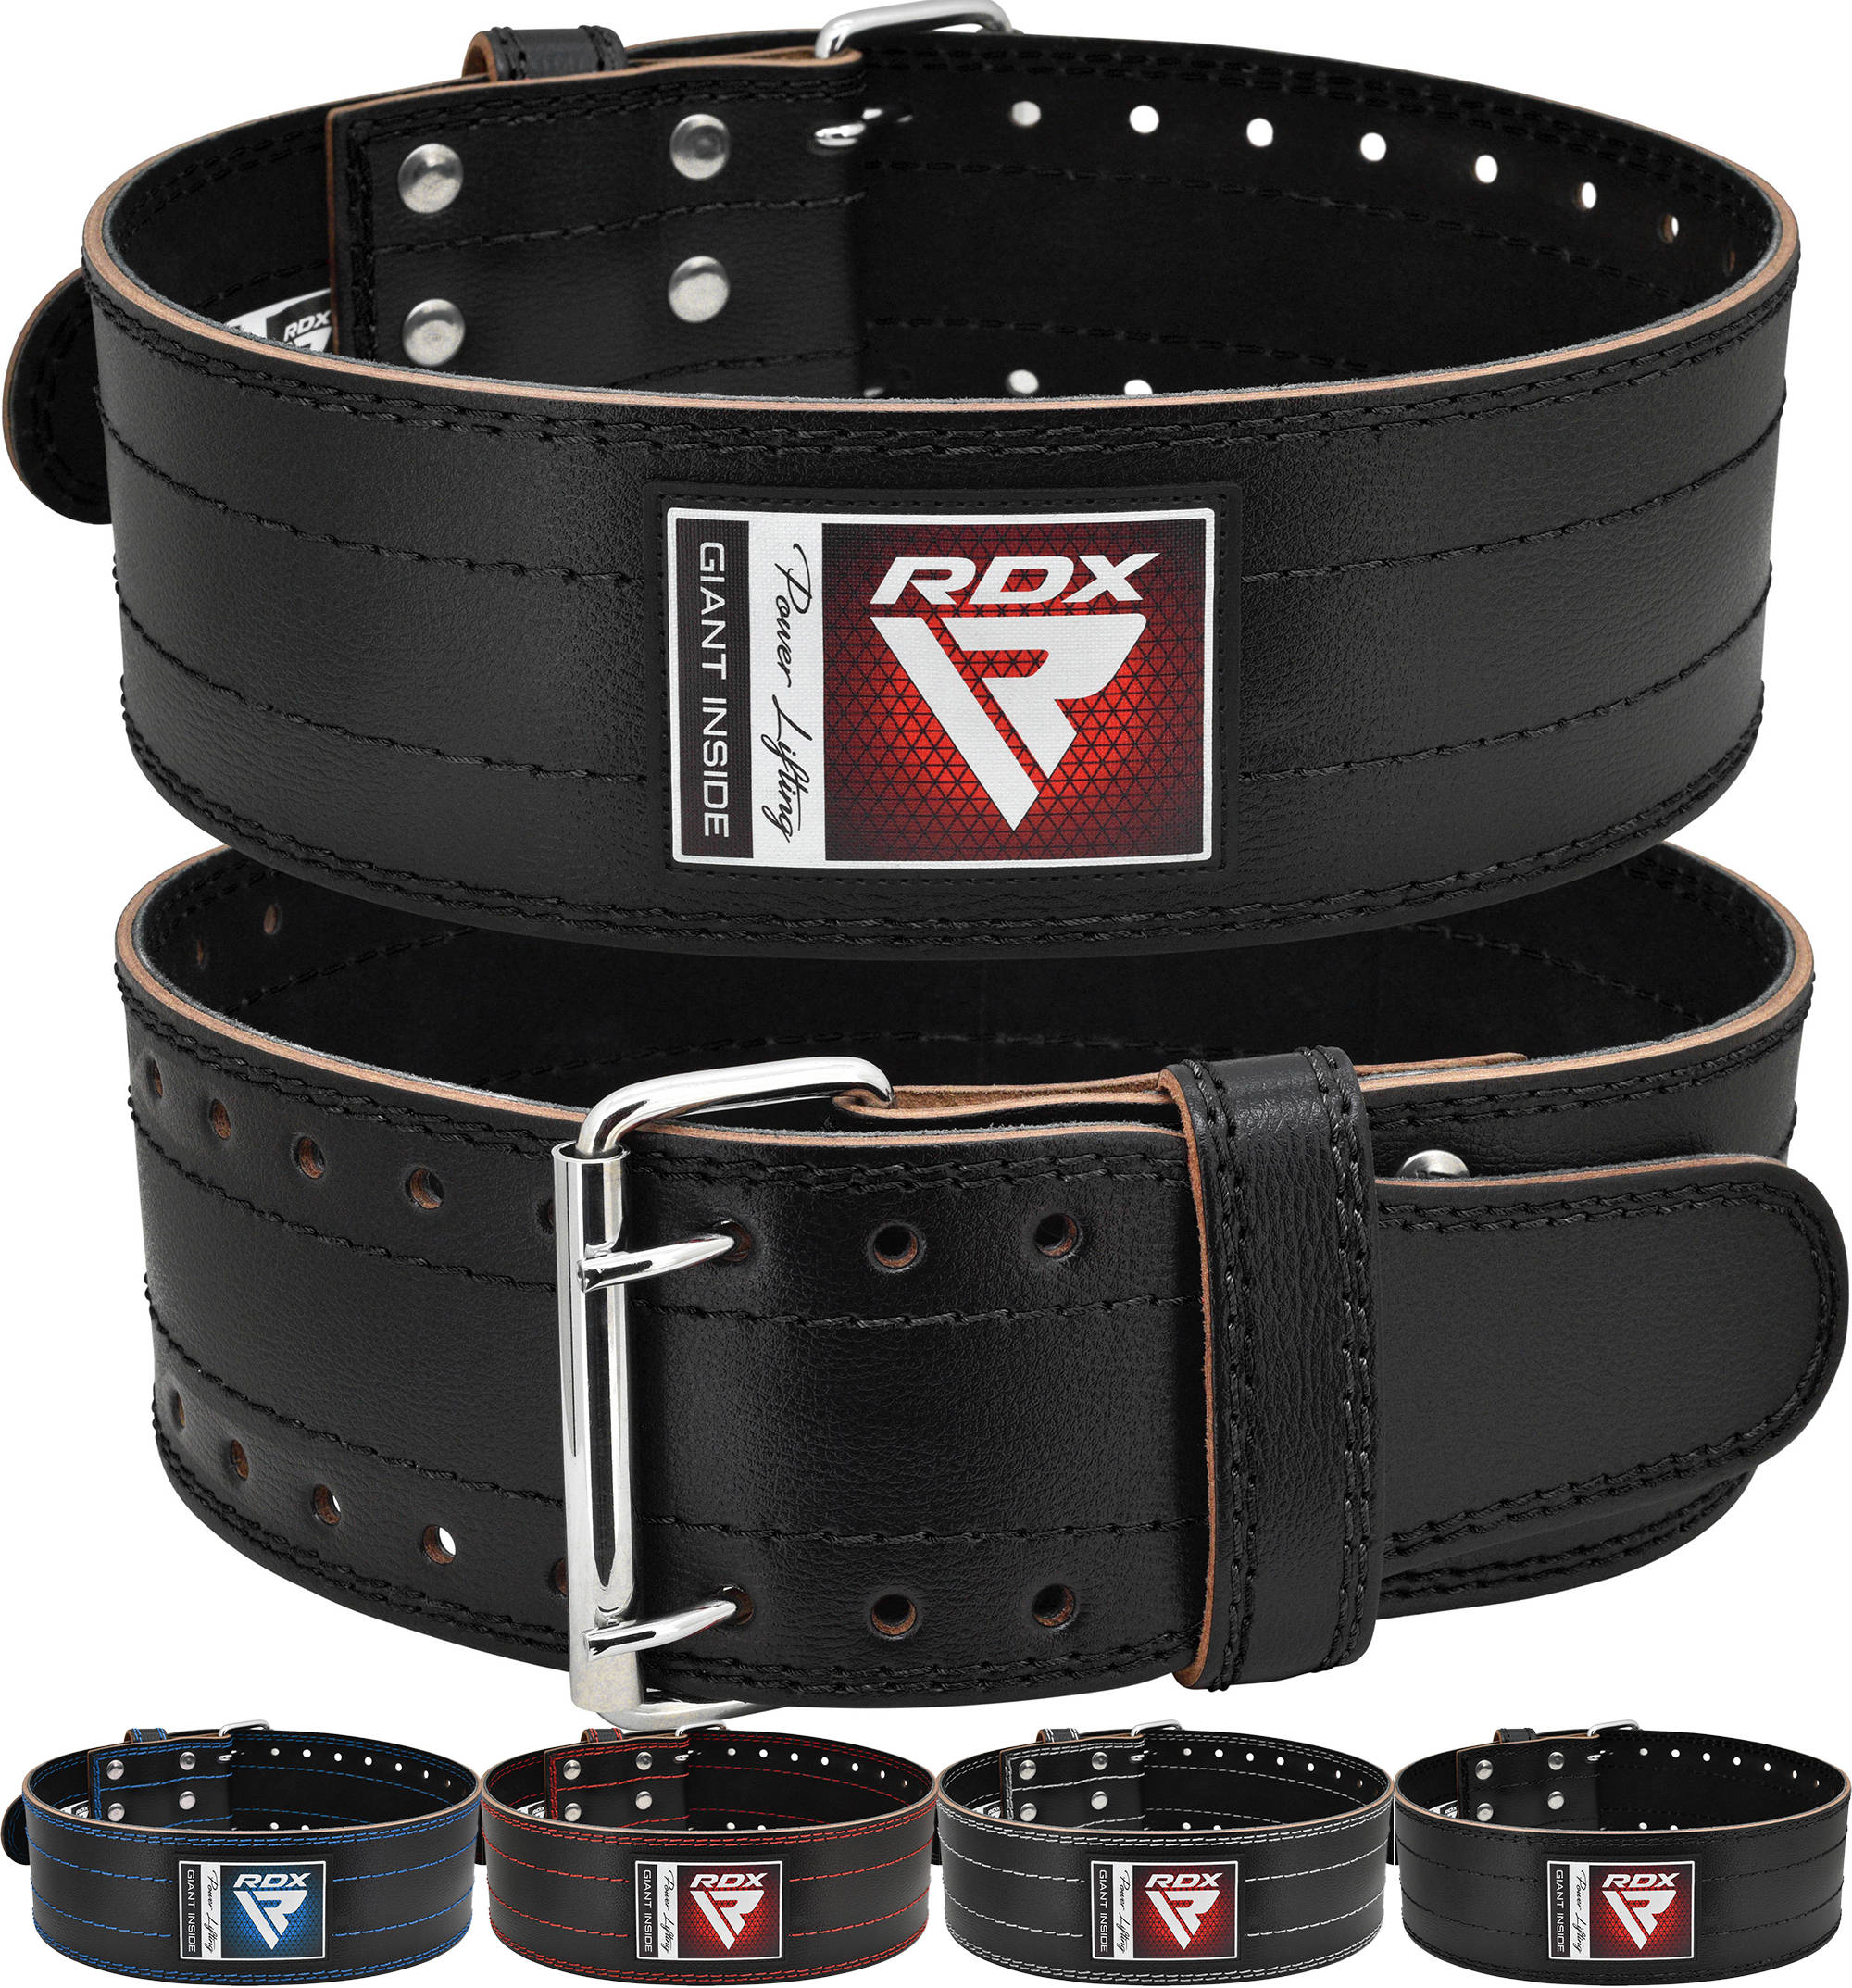 Heavy Leather belts Weightlifting Training Body-Building Gym Power Strength Lift